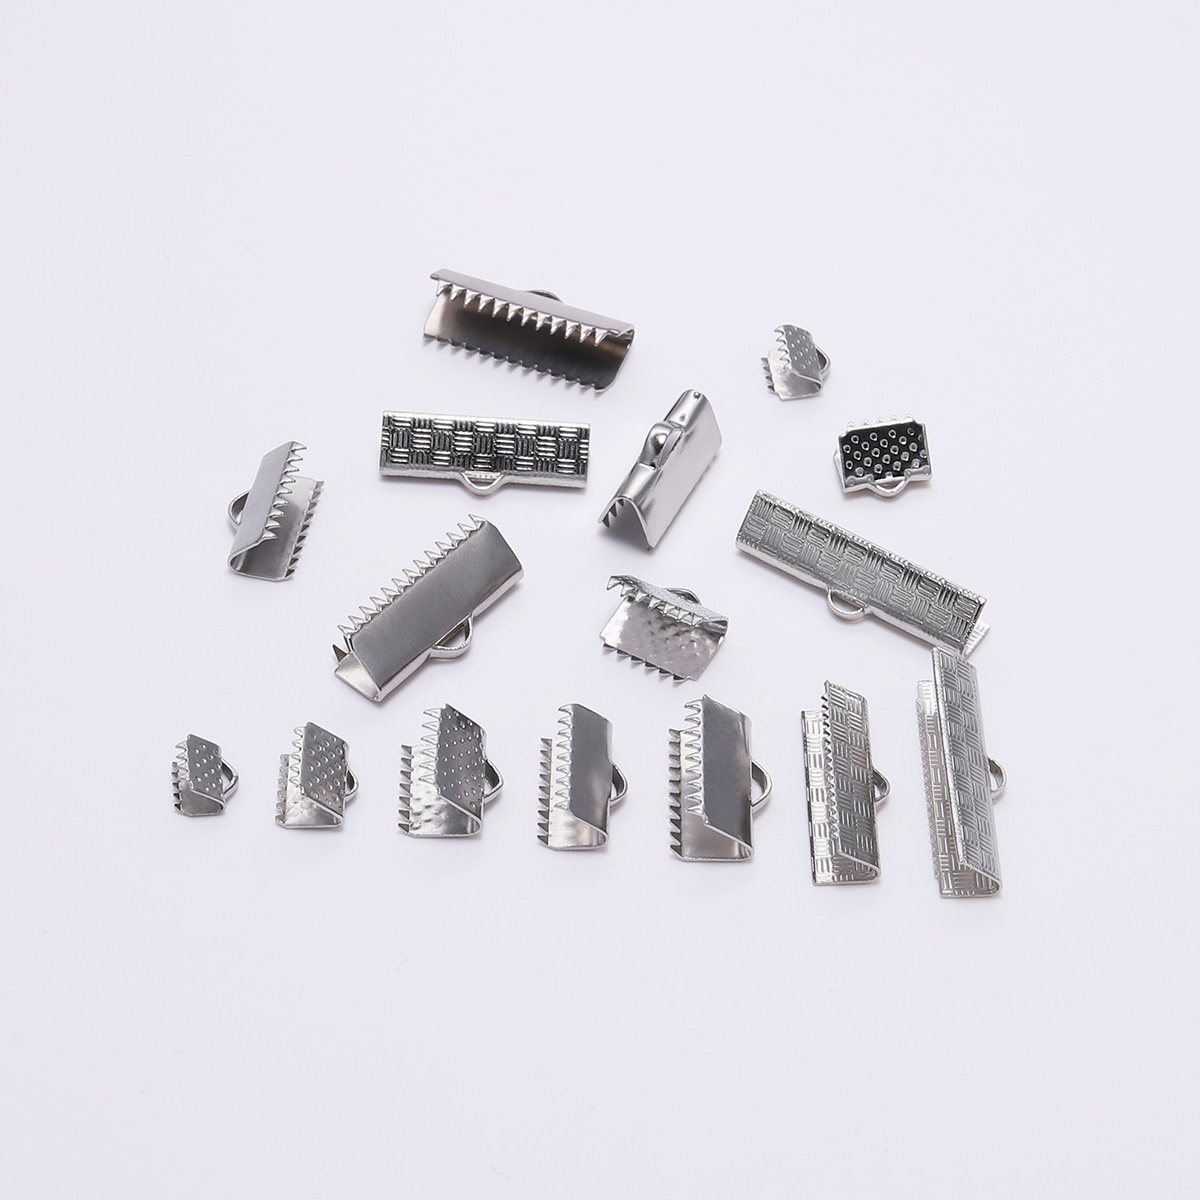 Stainless Steel Crimp End Beads Buckle Tips Clasp Cord Flat Cover Clasps For Jewelry Making Findings Diy Bracelet Connectors